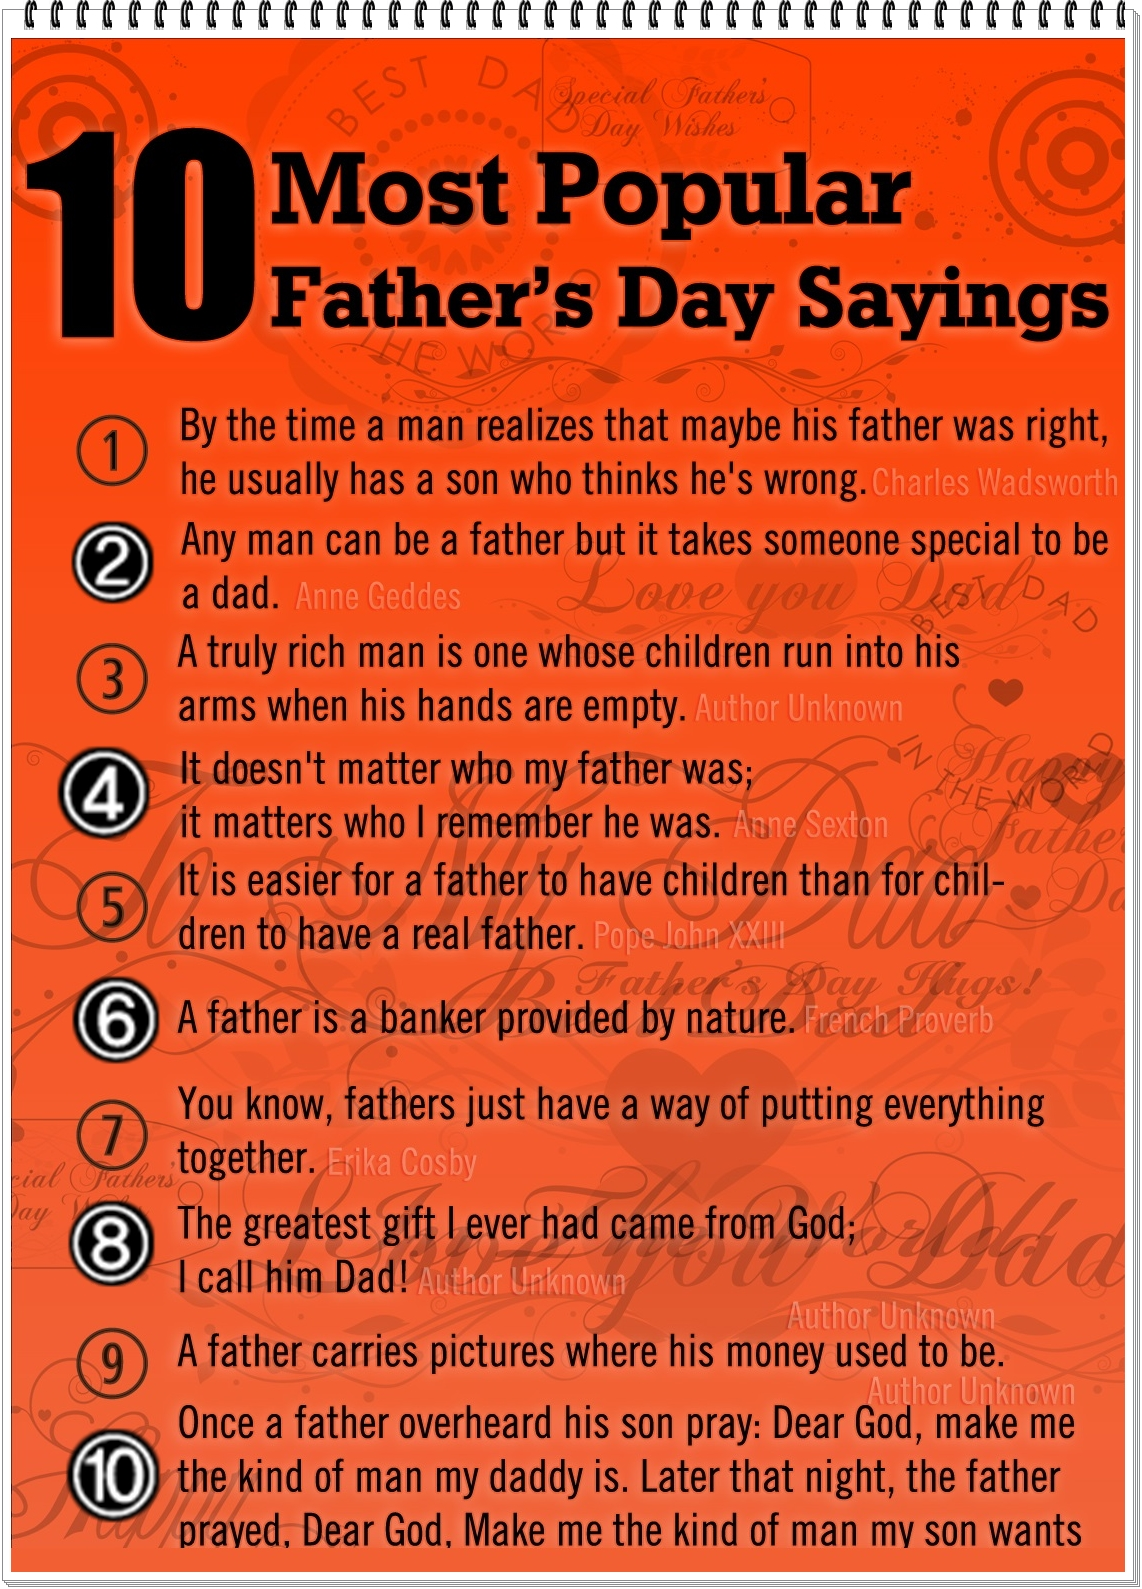 Fathers Day Quotes And Captions For Instagram Cute Instagram Quotes